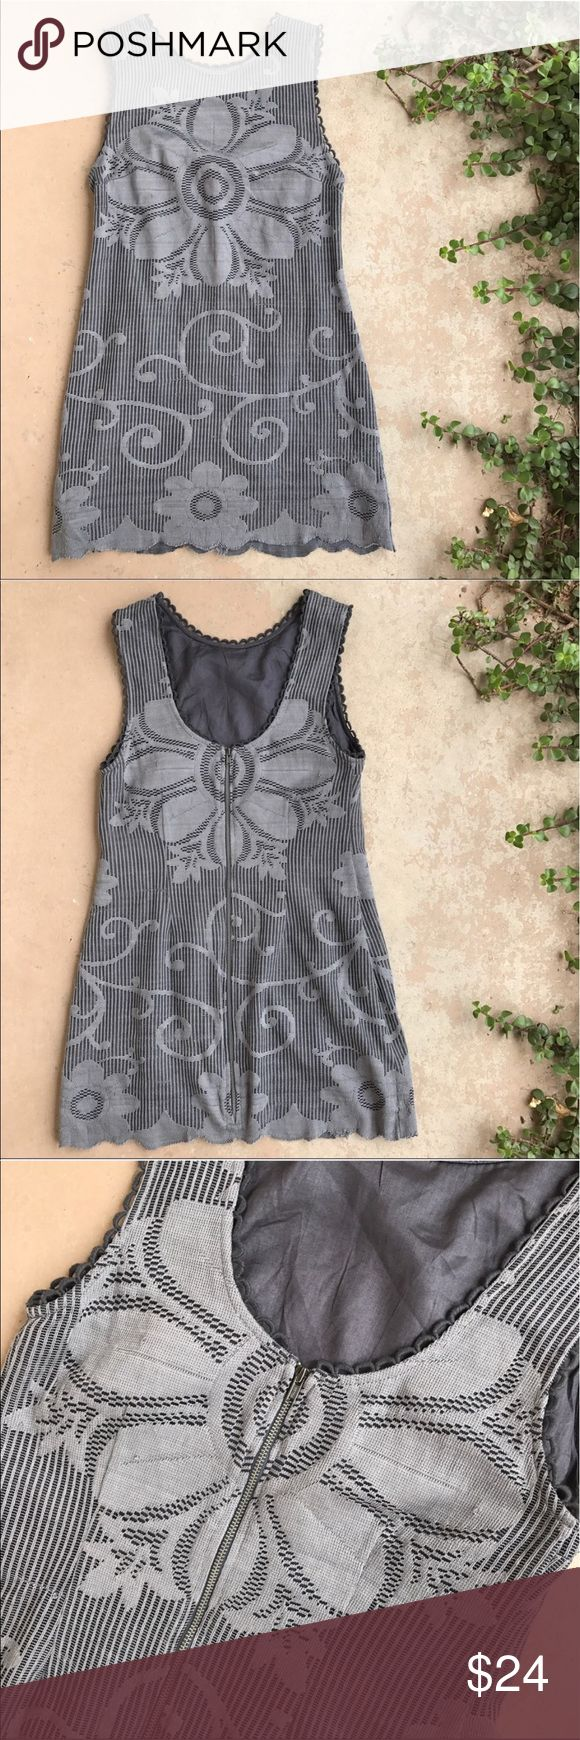 Free People Gray Crochet Boho Floral Mini Dress Lovely gray lace mini dress by New Romantics by Free People. The material is delicate so there are a few tiny snags (see last pic) but it adds to the distressed look Free People is known for. Overall great condition! No stains, holes, rips, etc. Size 2. Free People Dresses Mini